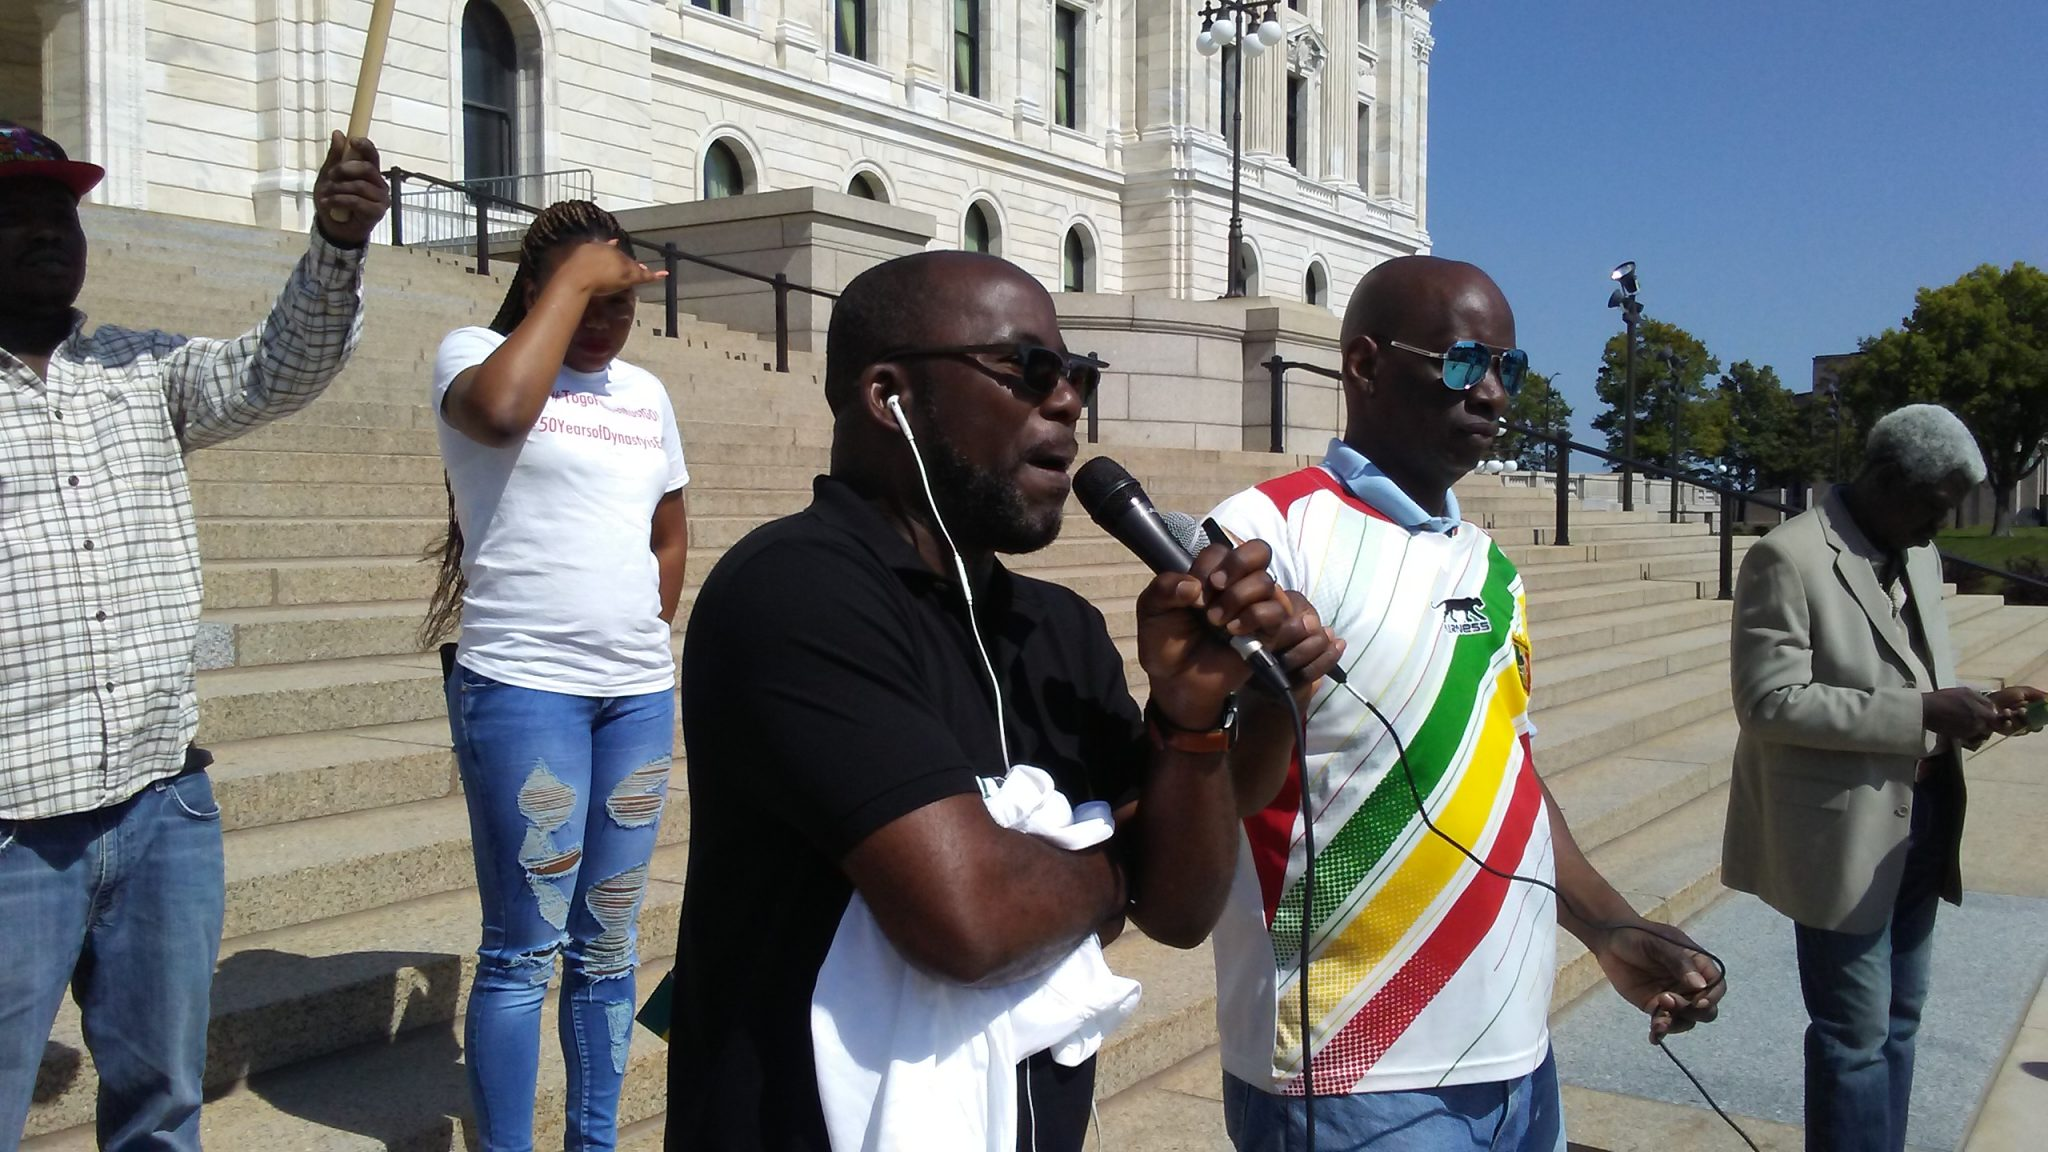 Togolese protest in St. Paul, Minnesota. Photo: The AfricaPaper/James K. Fasukoi